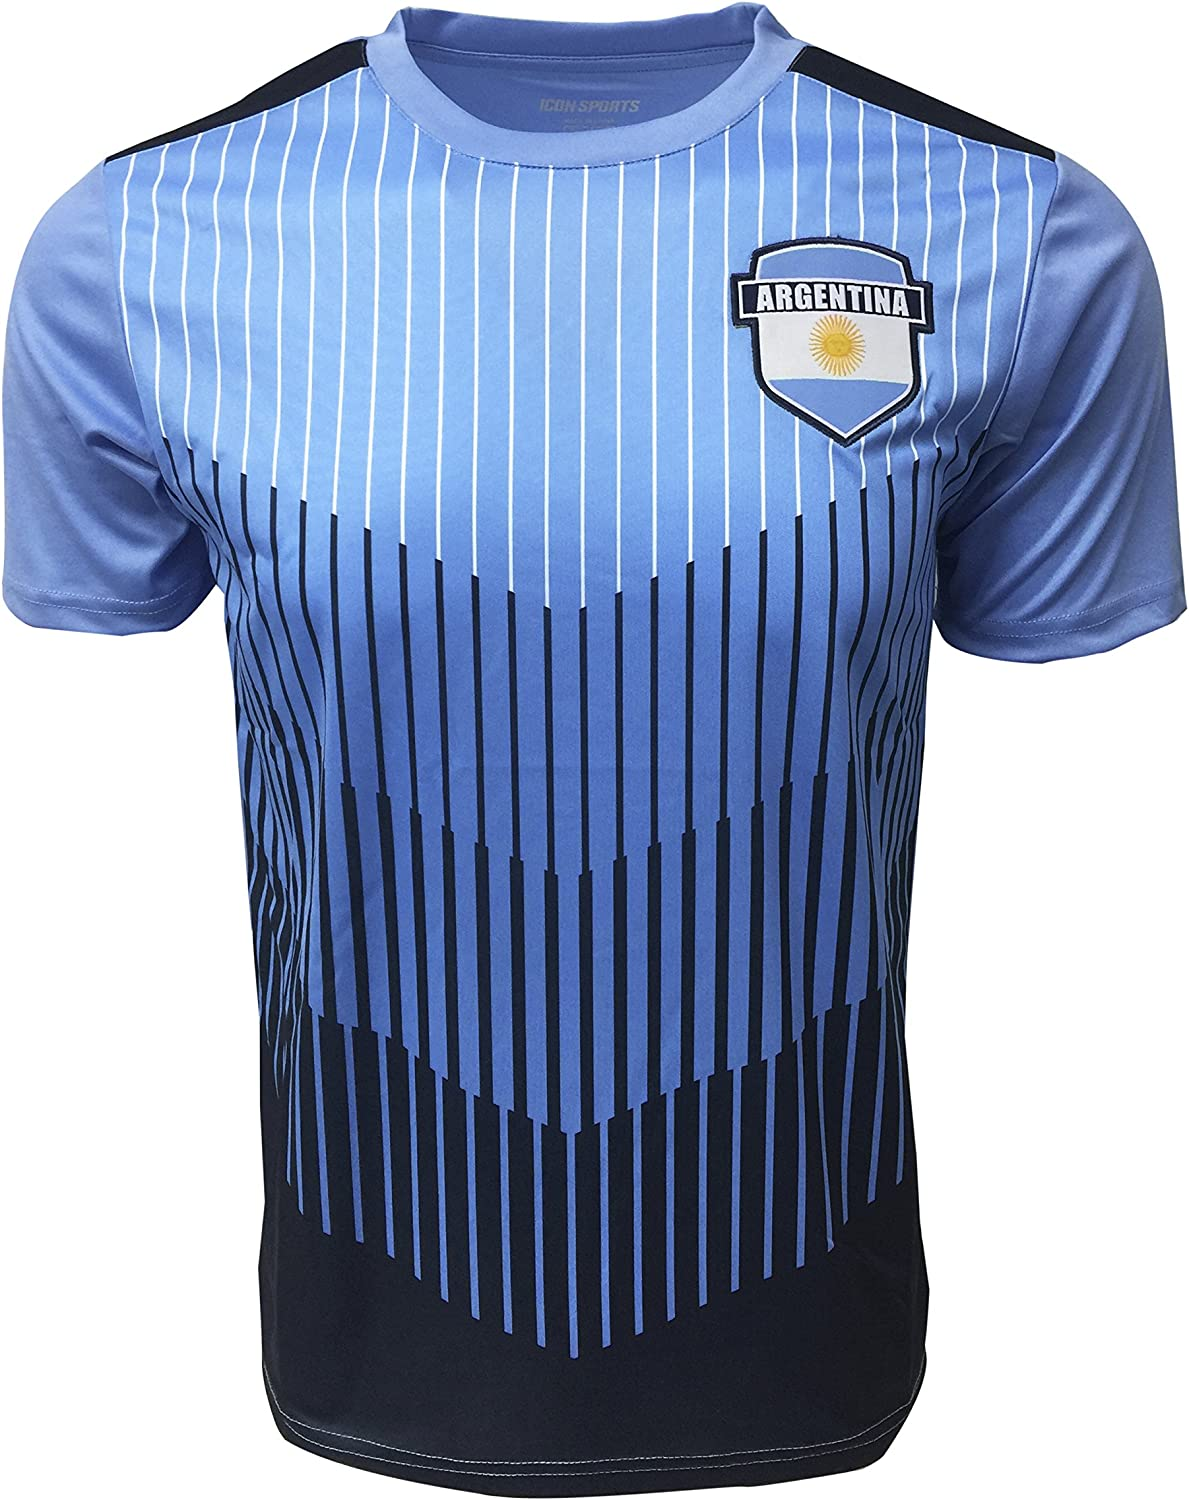 Icon Sports Argentina Training Jersey Regular discount for Kids AFA S Price reduction and Adults